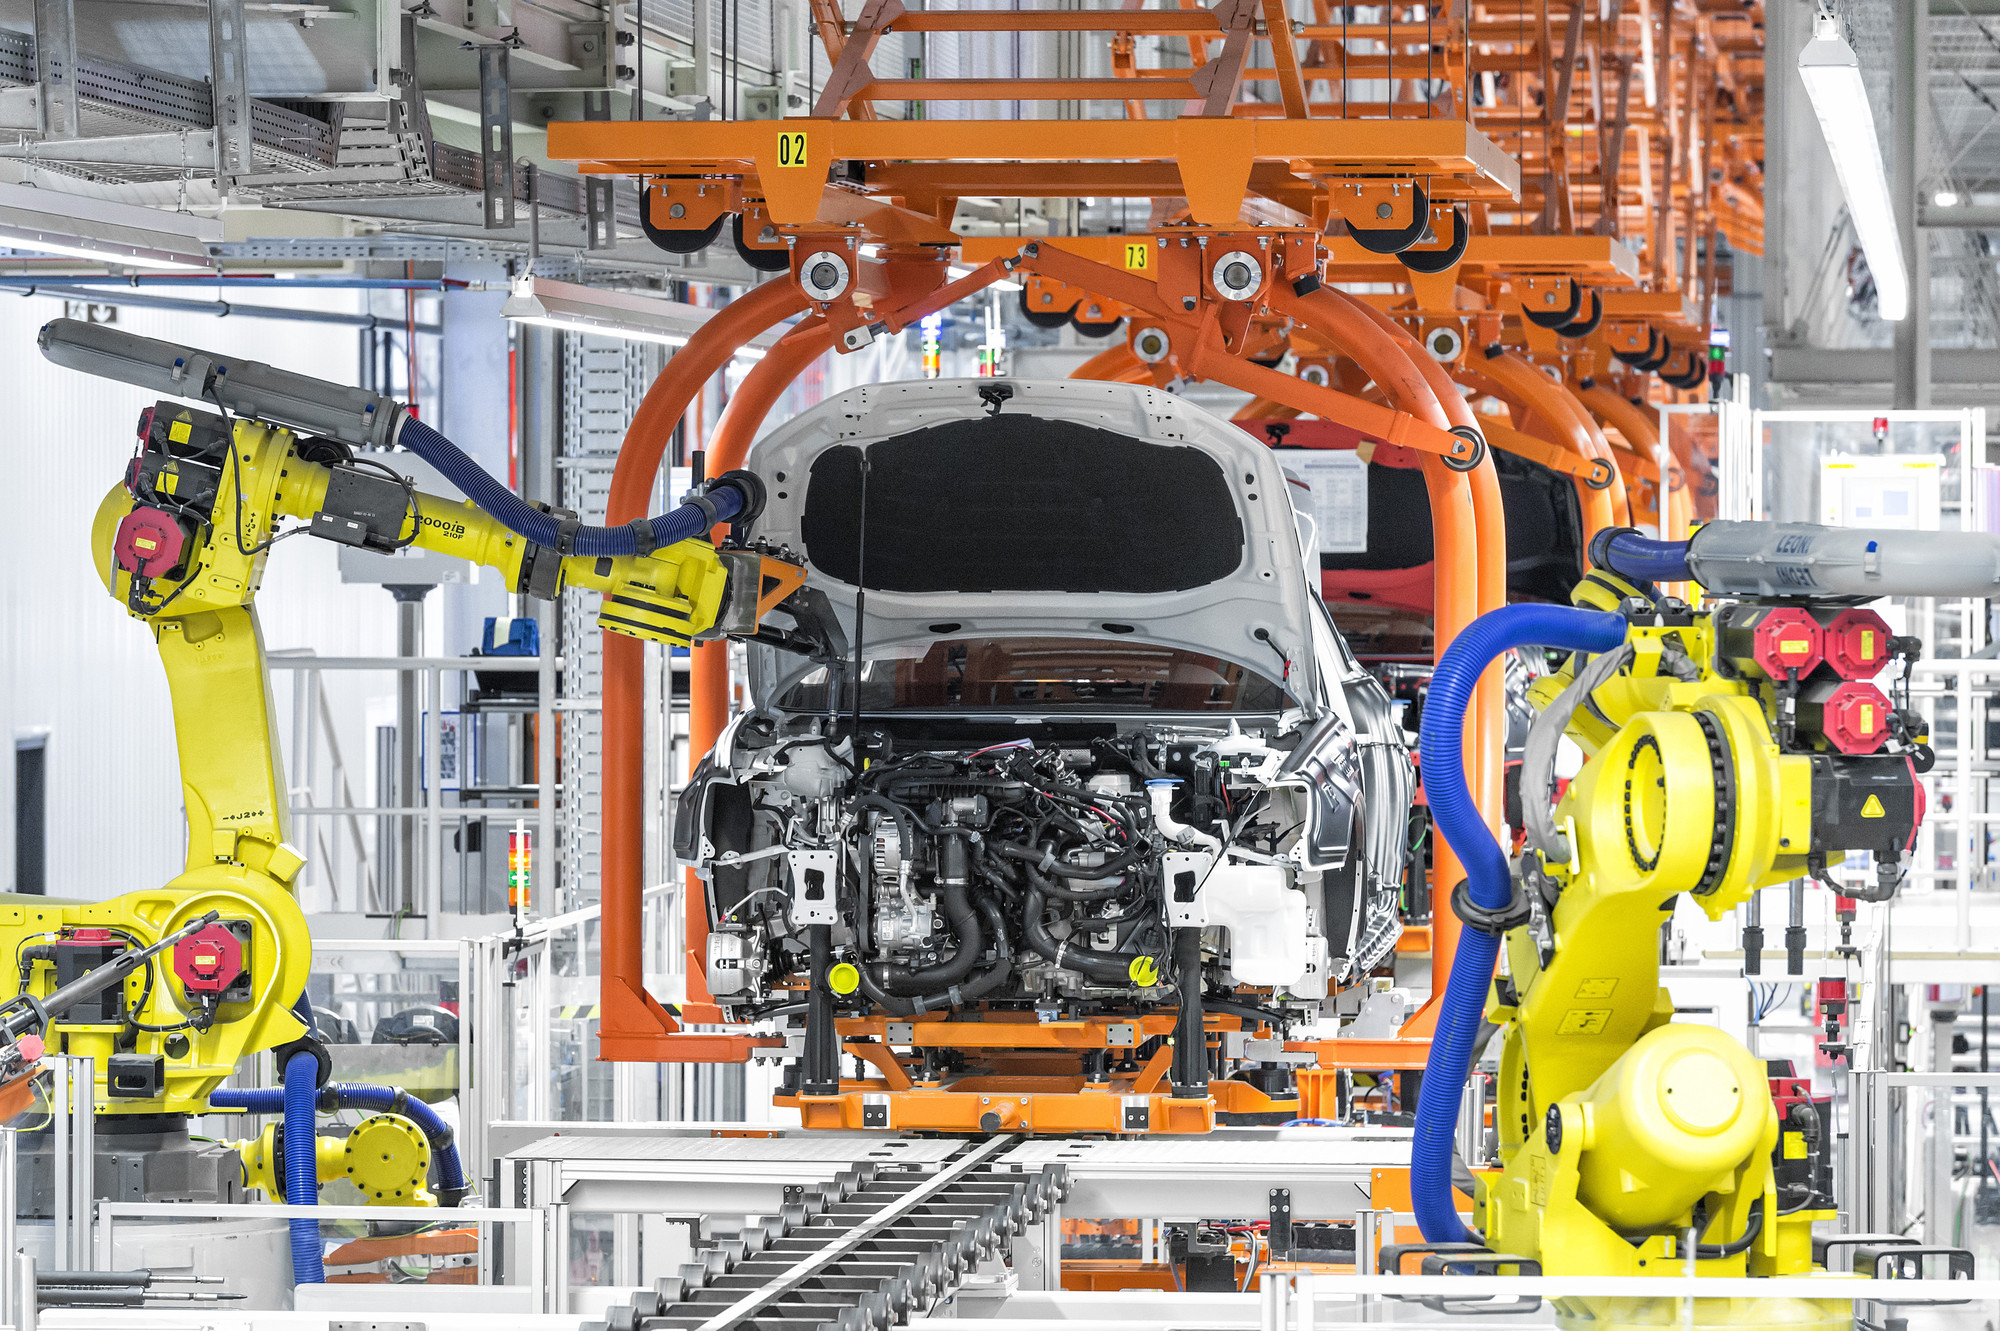 Robots assembling an Audi A3 © Courtesy of Audi